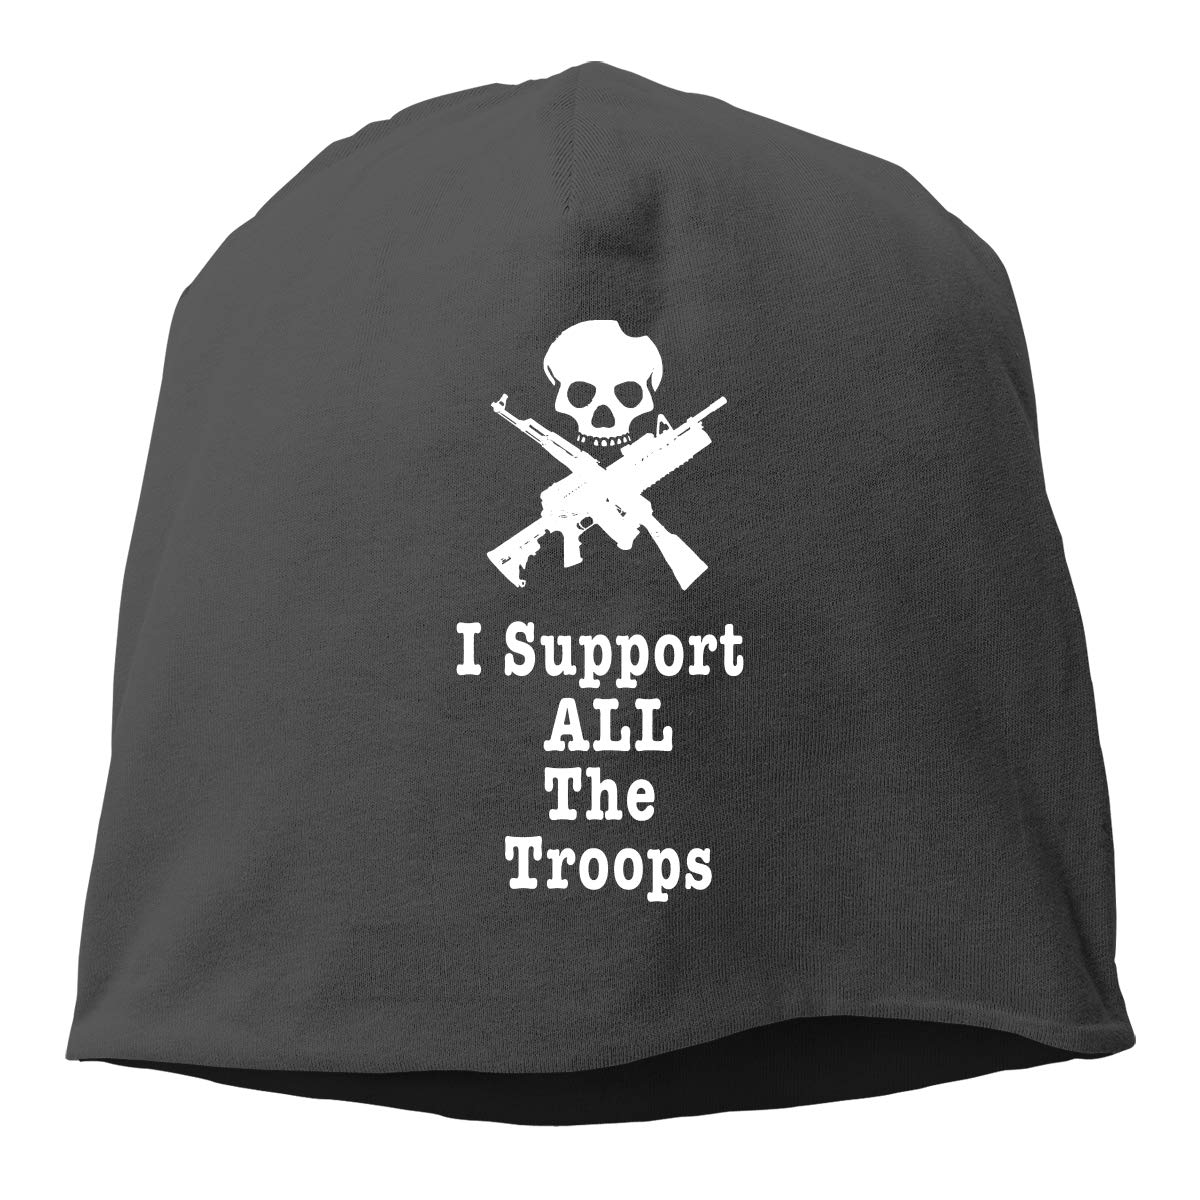 I Support All The Troops Unisex Knitted Hat Beanie Hat Warm Hats Skull Cap